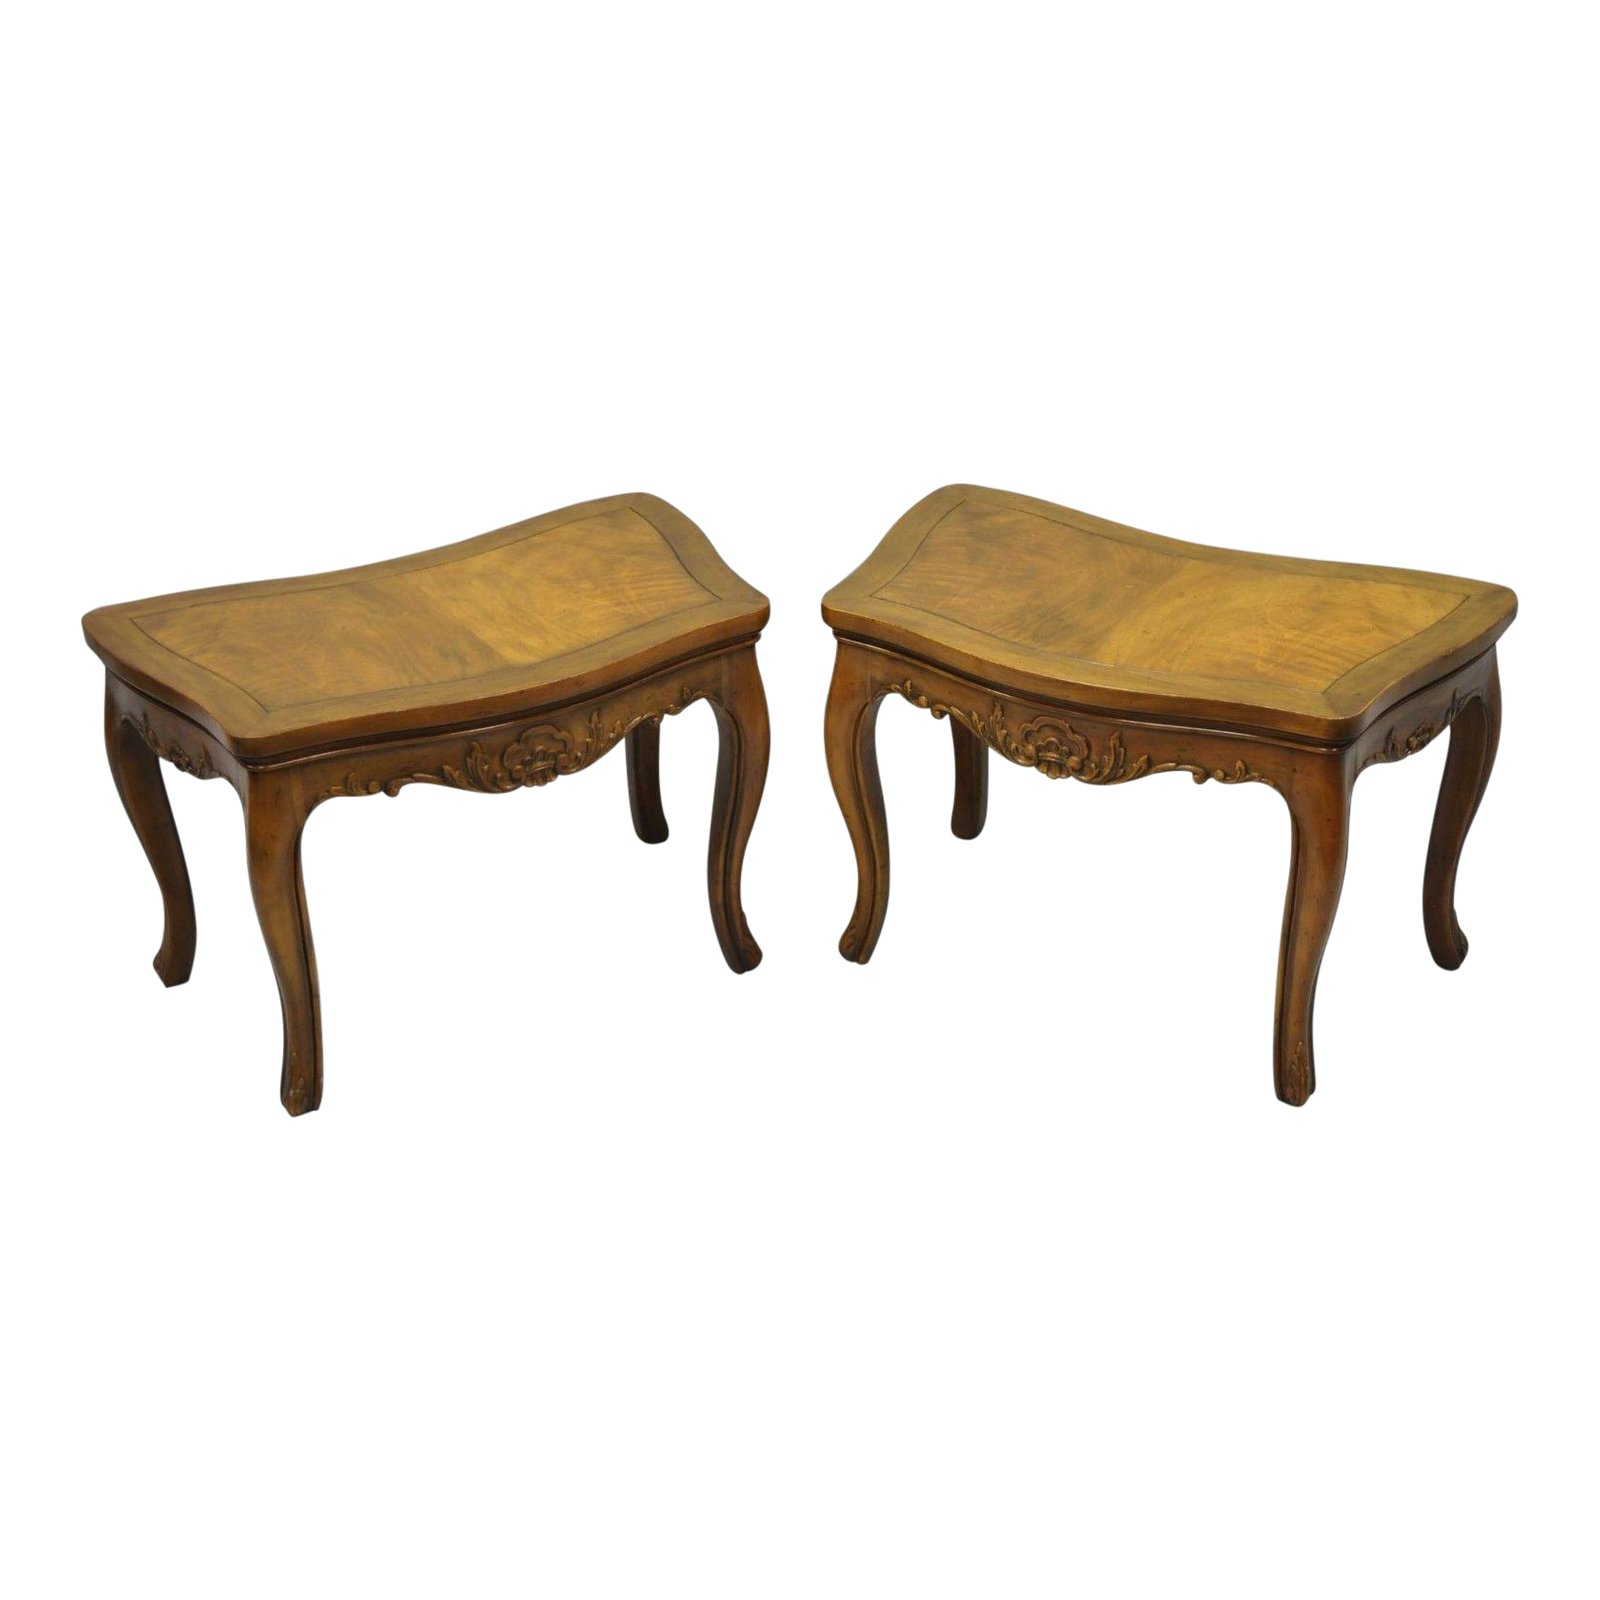 pair vintage walnut low demilune small side accent pedestal end tables attributed baker table chairish inch round tablecloth cotton world market lamps red dining room furniture